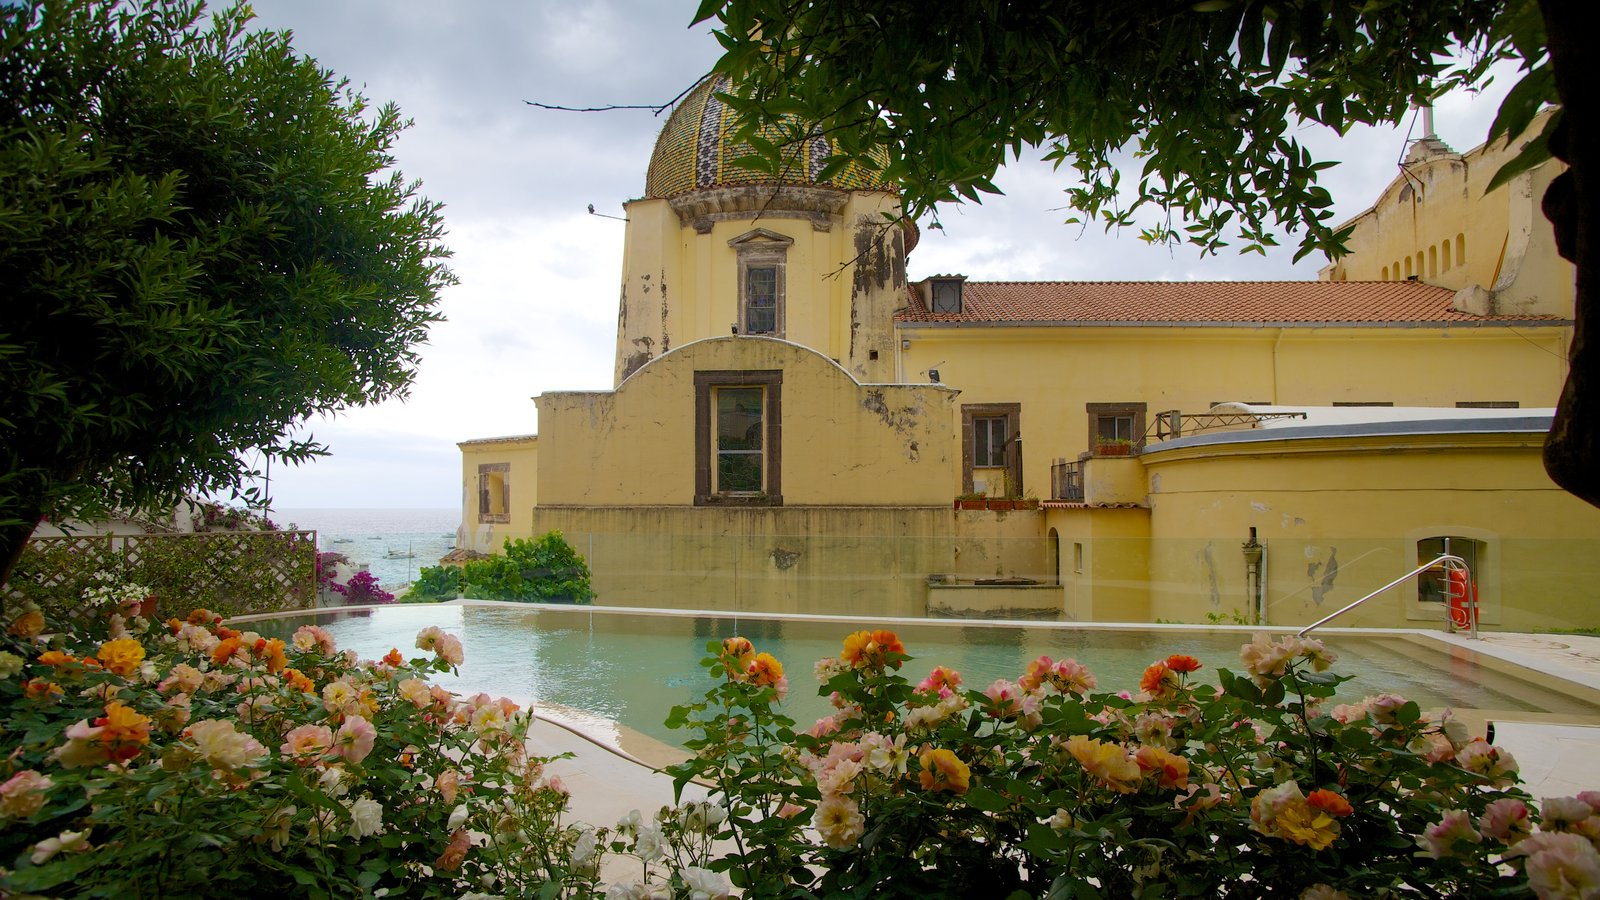 Church of Santa Maria Assunta which includes flowers and a pool